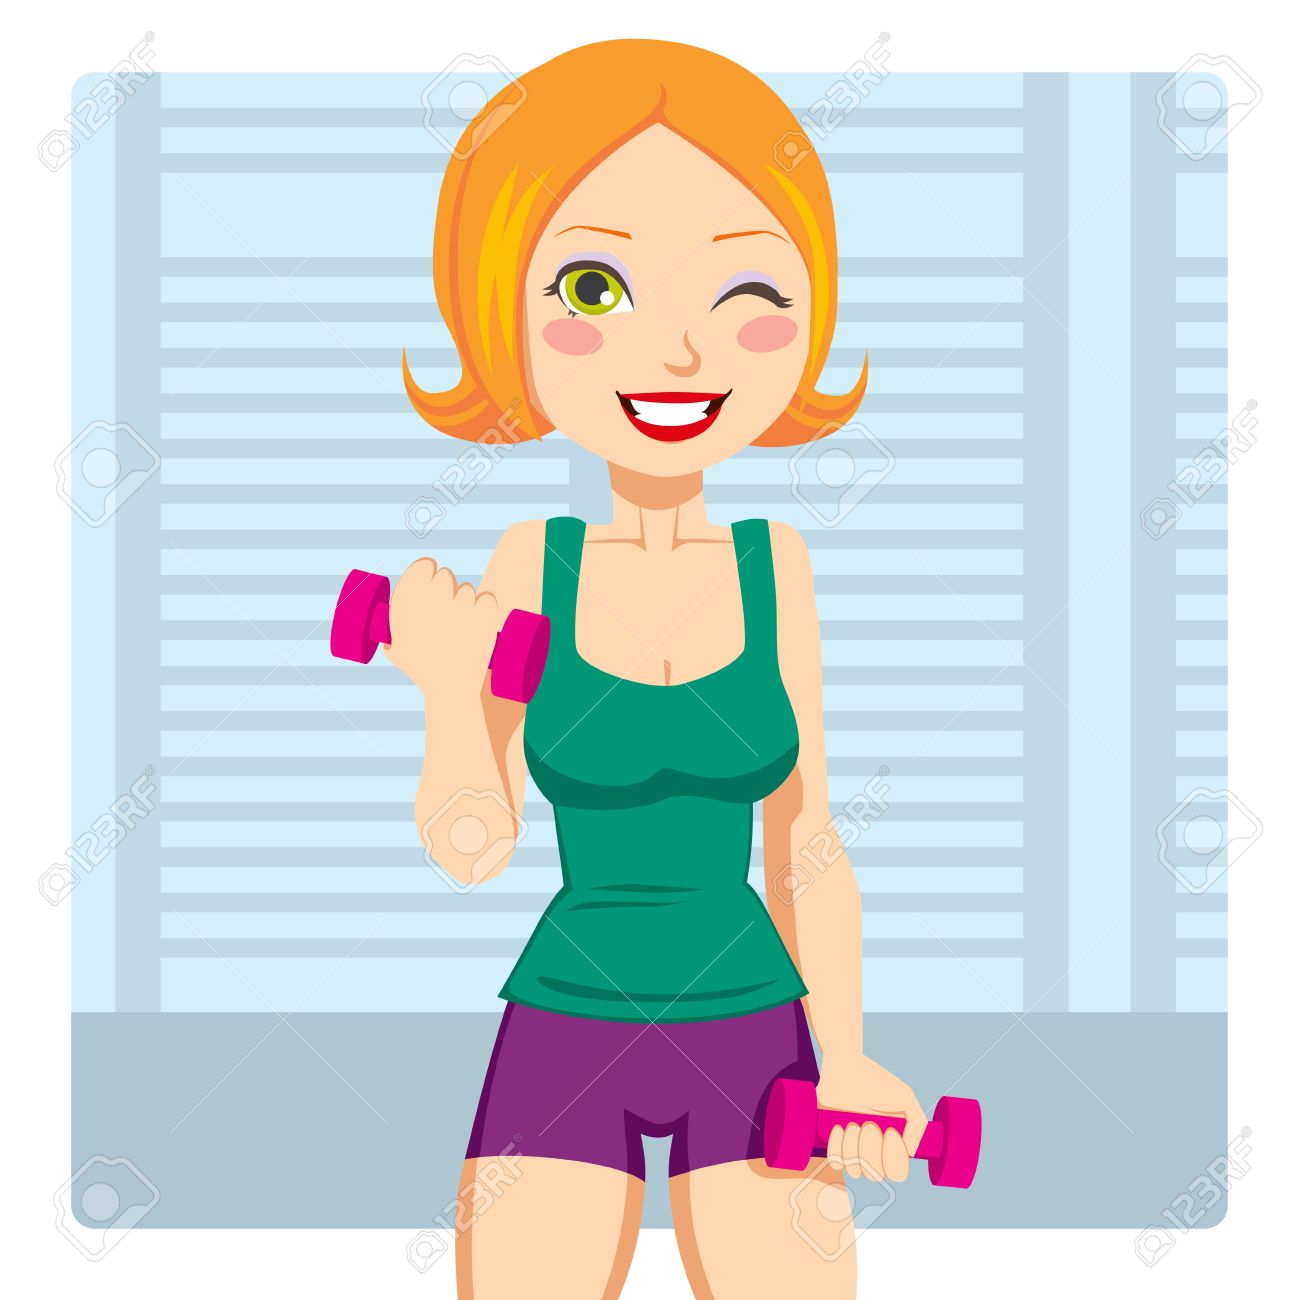 Fitness girl clipart graphic royalty free download Free Girl Exercising Cliparts, Download Free Clip Art, Free Clip Art ... graphic royalty free download